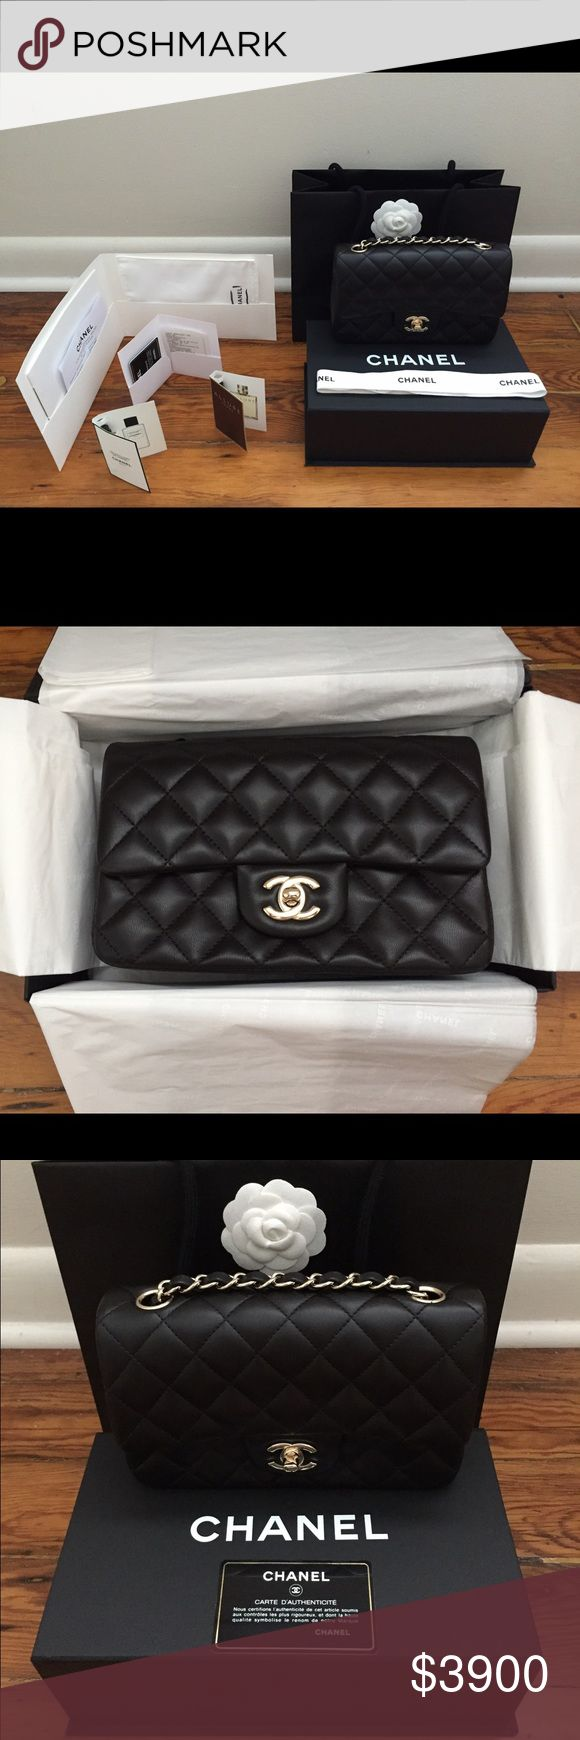 RARE NIB 2016 Black Chanel Rectangular Mini Flap The bag is Black Lambskin with the new shiny GHW. The bag is in PRISTINE condition as it has never been used. The bag was an impulse buy in July 2016 at the Chanel Boutique on Saint-Honore in Paris, France. The bag comes with everything shown in the pictures: Chanel Shopping Bag, Chanel Box with magnetic closure, Chanel Dustbag, Chanel Care Booklet and Glove, a Copy of the Receipt, and the Authenticity Card. The Bag does not come with Retail…